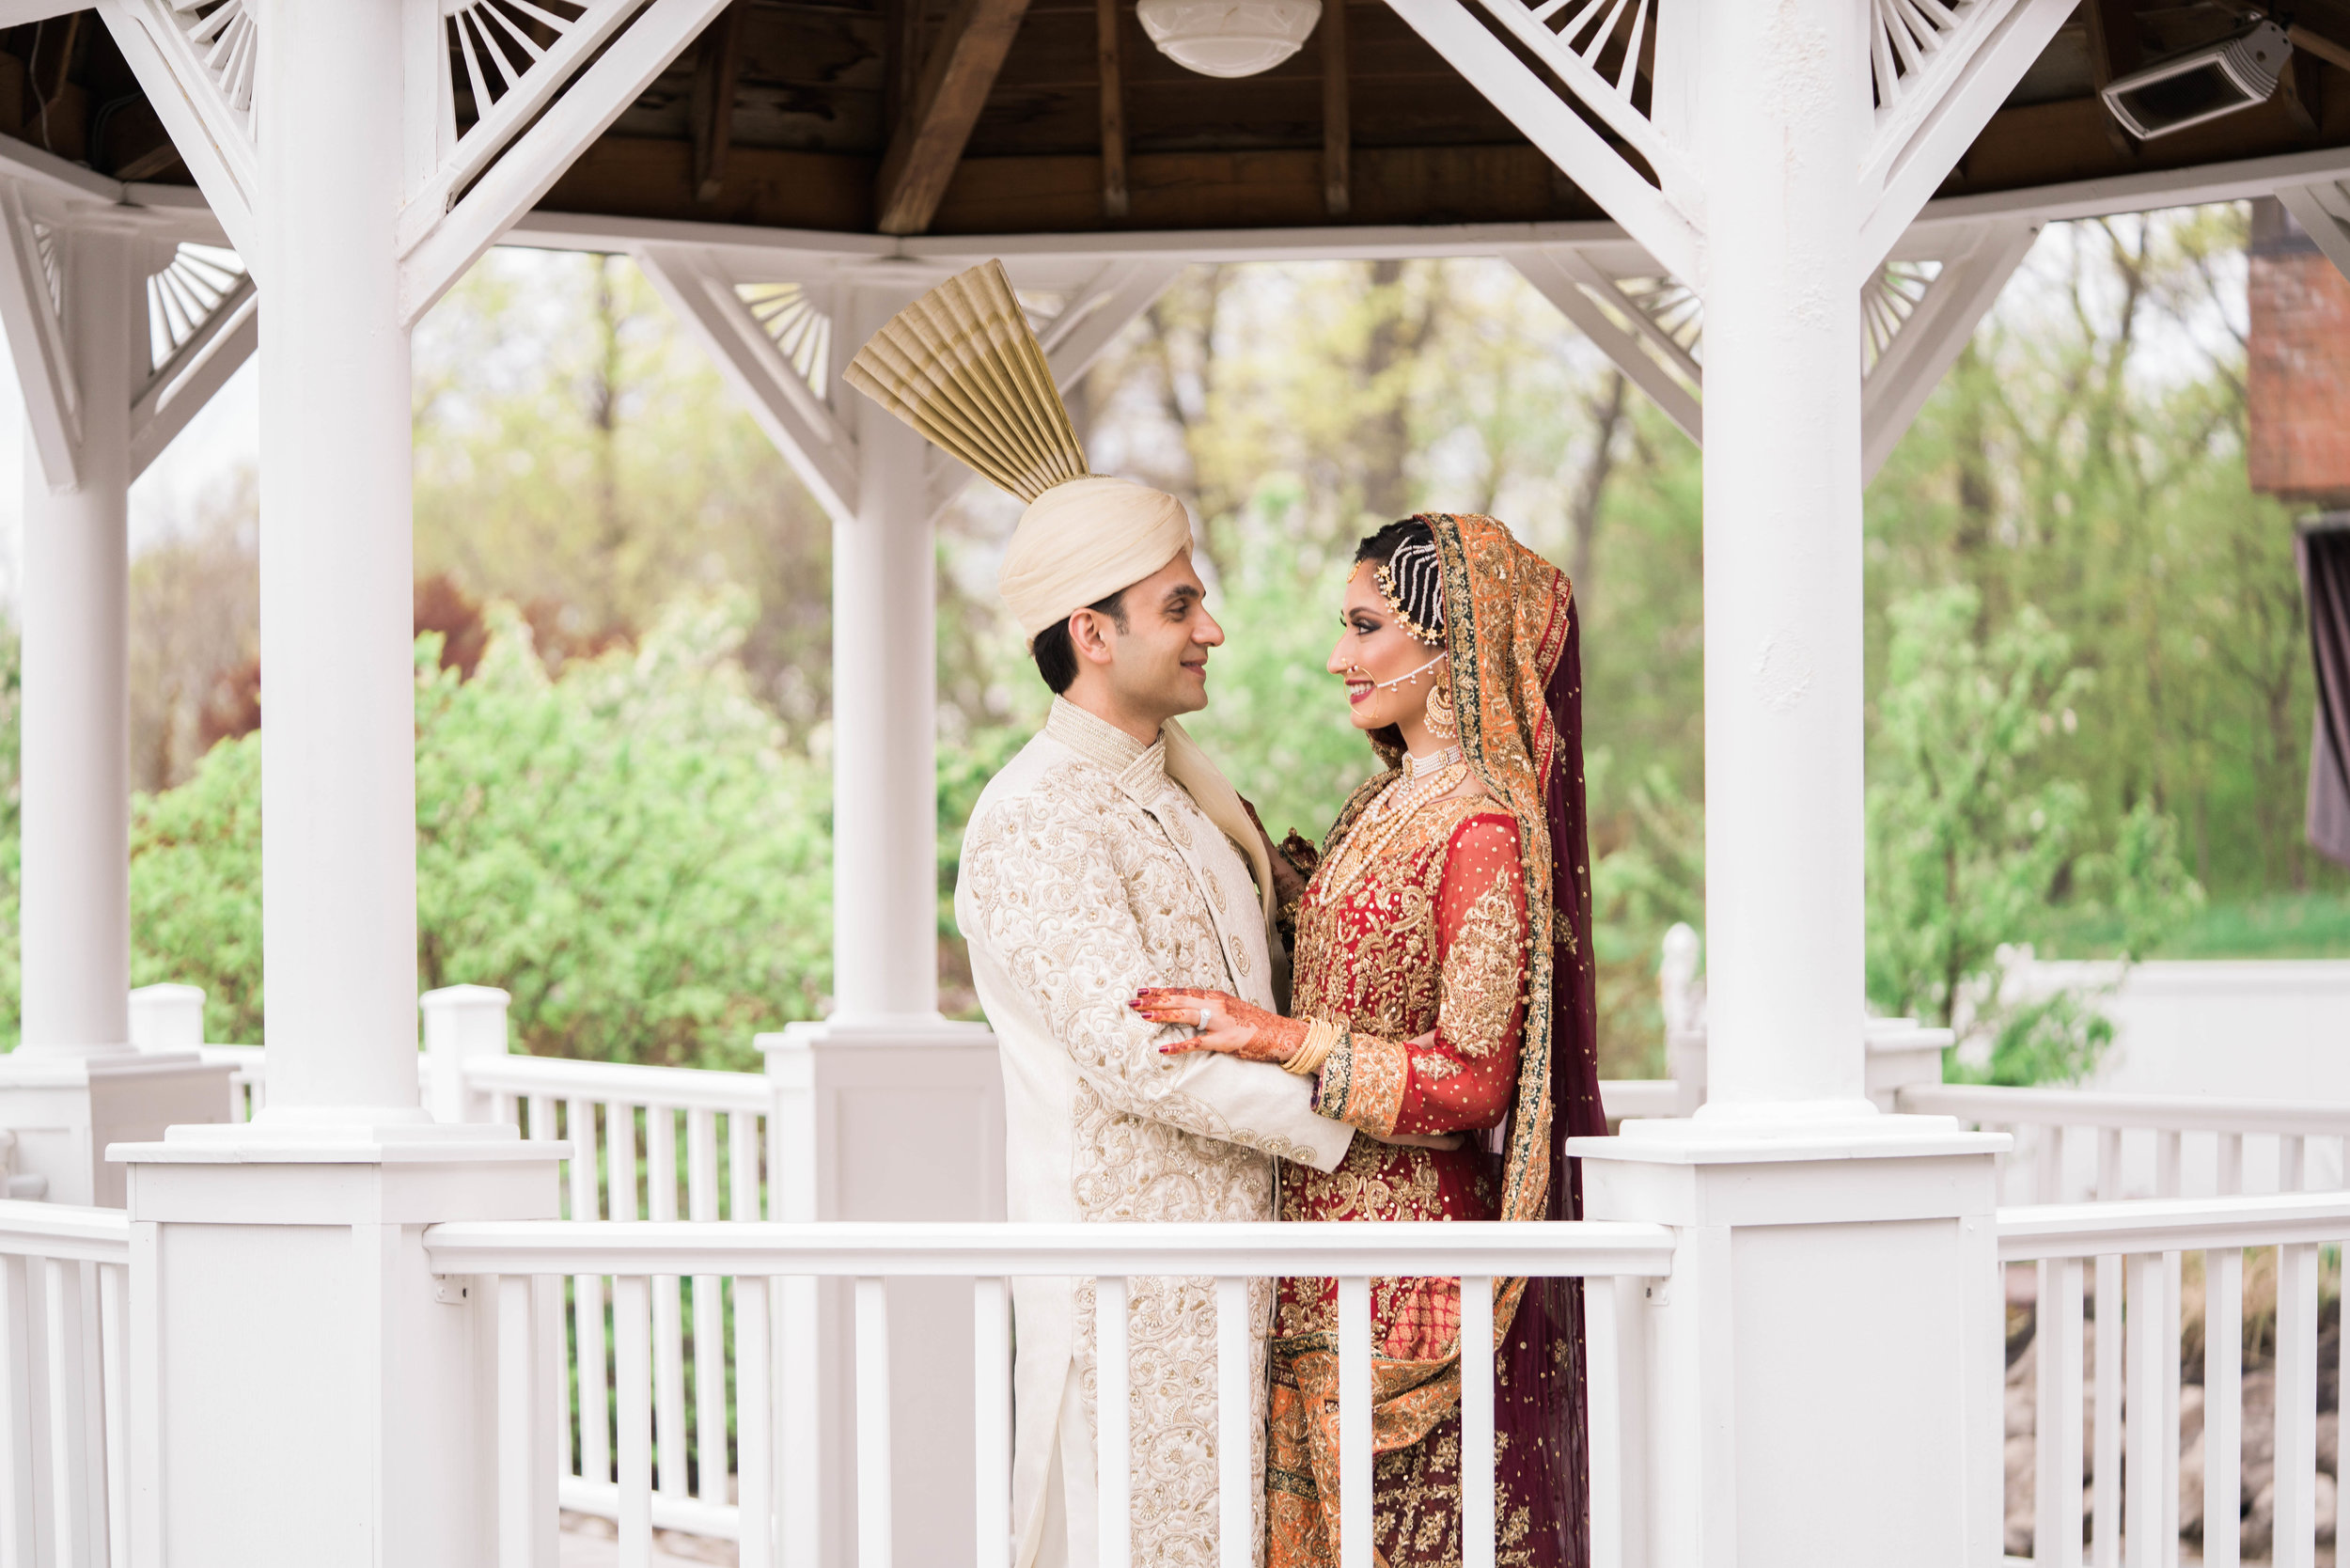 Nadia and Usman Blog Weddig Photography at Wintergarden by Monroe's in Rochester NY by Stefan Ludwig Photography-12.jpg